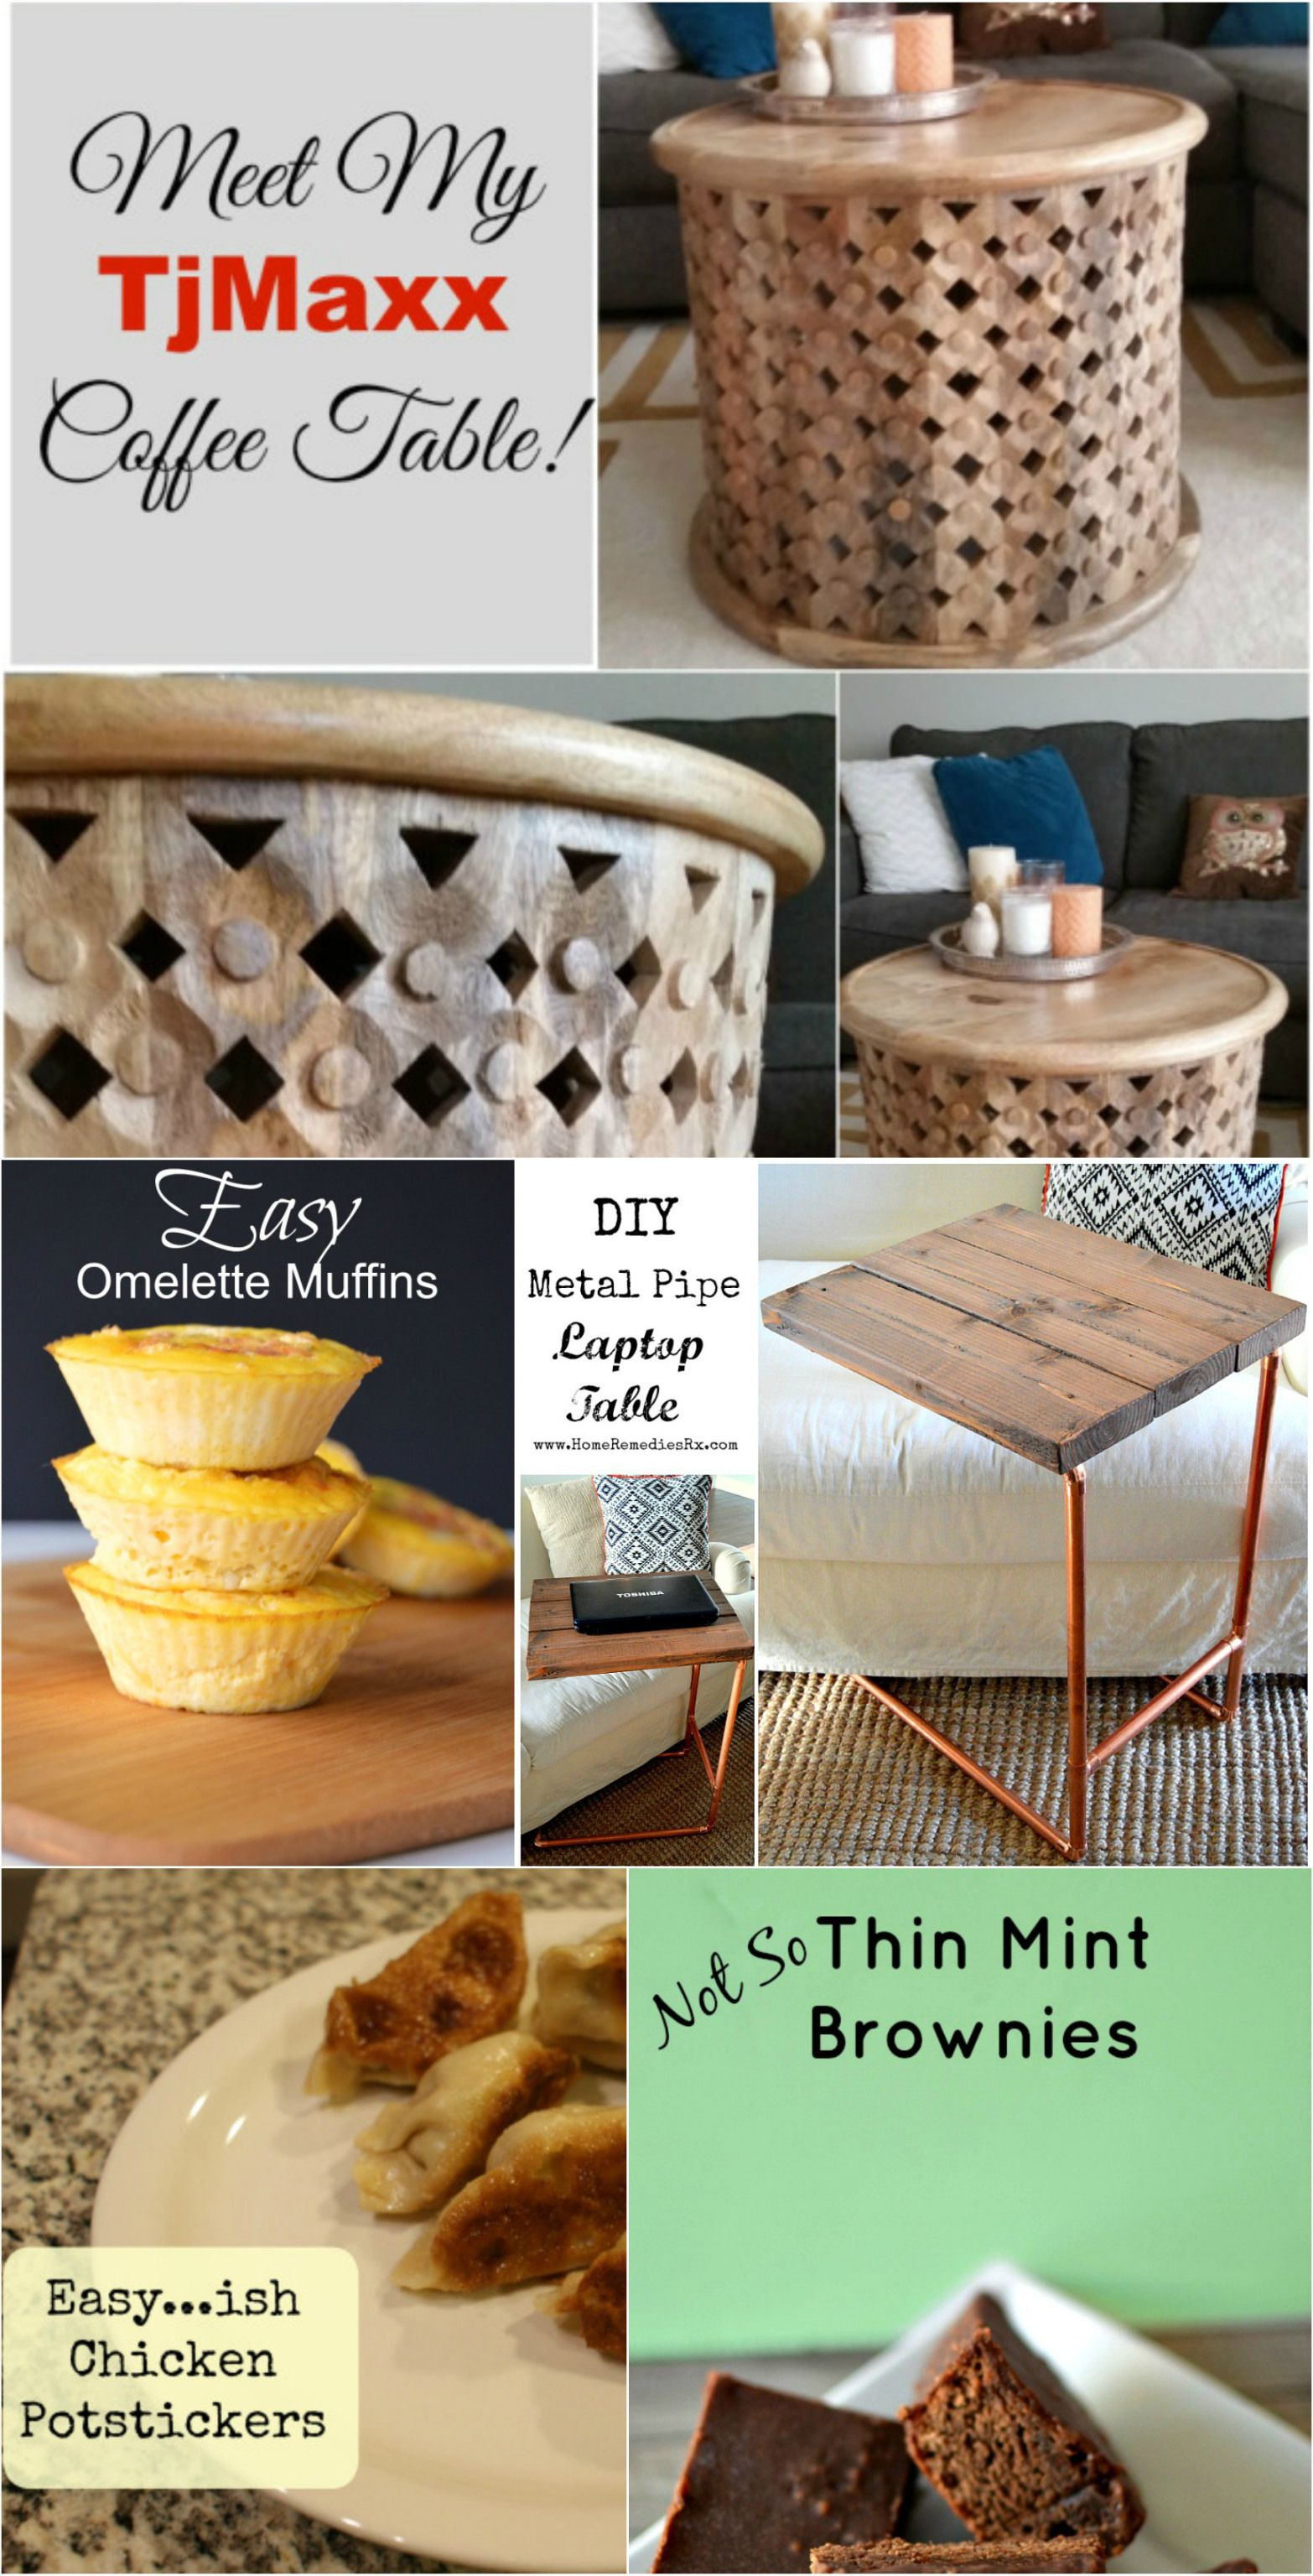 Talented Tuesday Link Party #16 - My Own Home